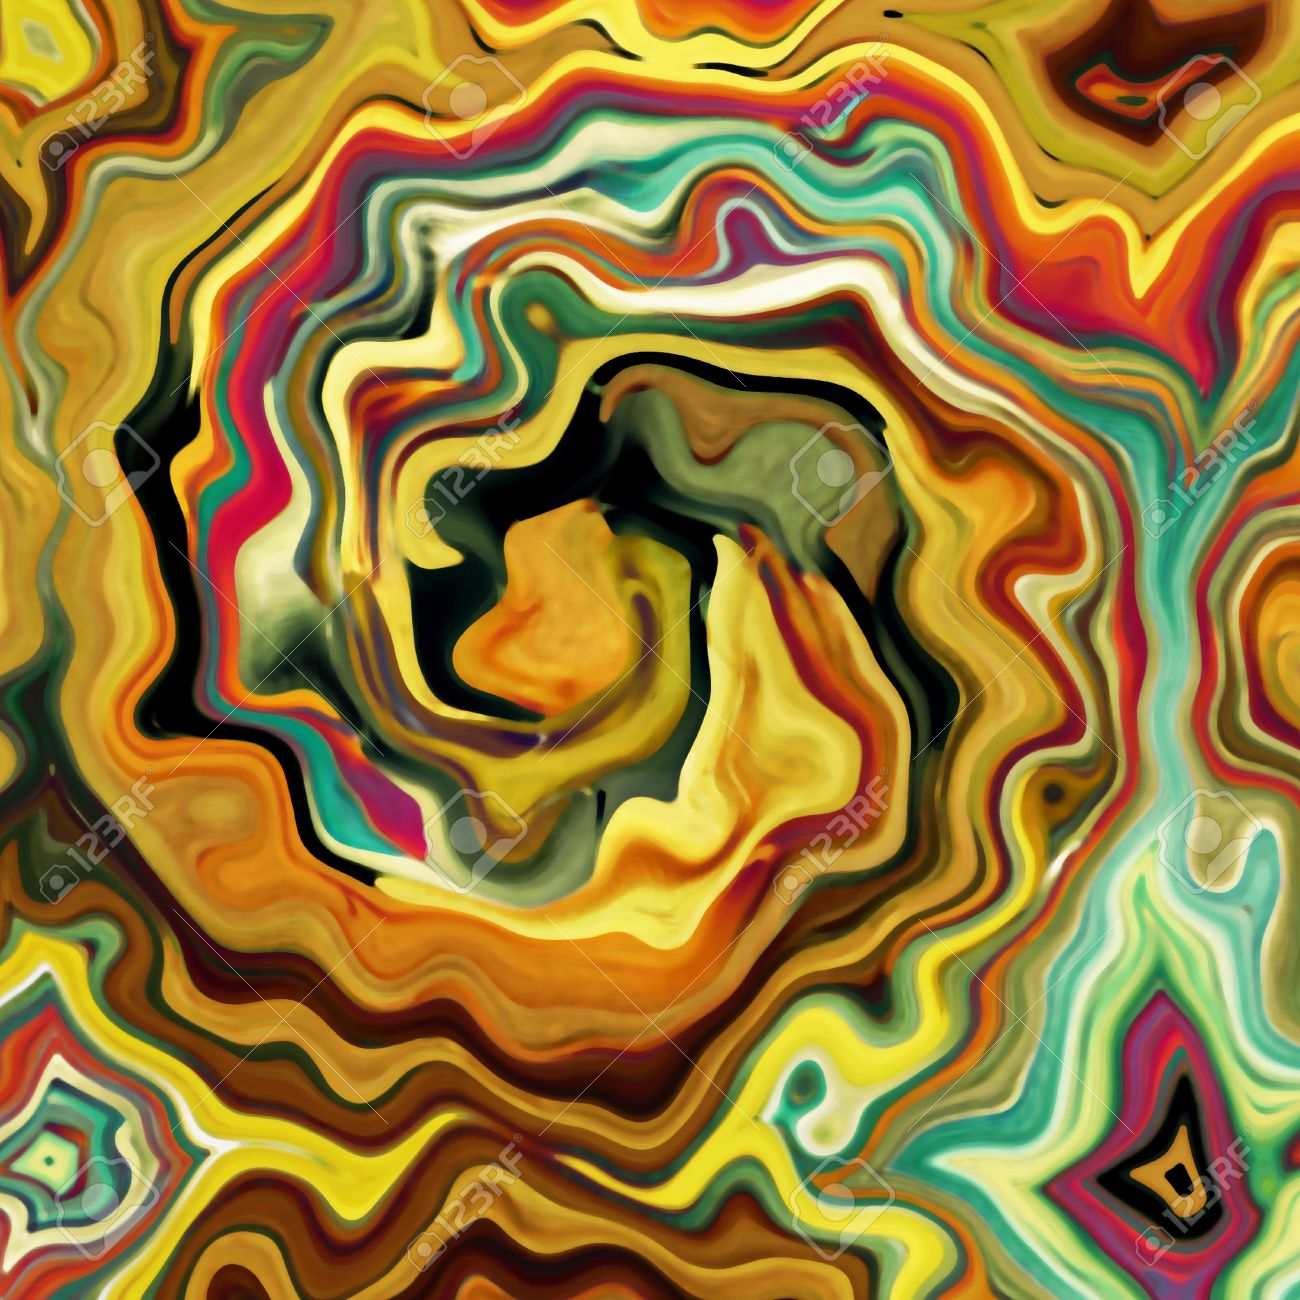 art abstract colorfur vibrant  paper background Stock Photo - 15060649